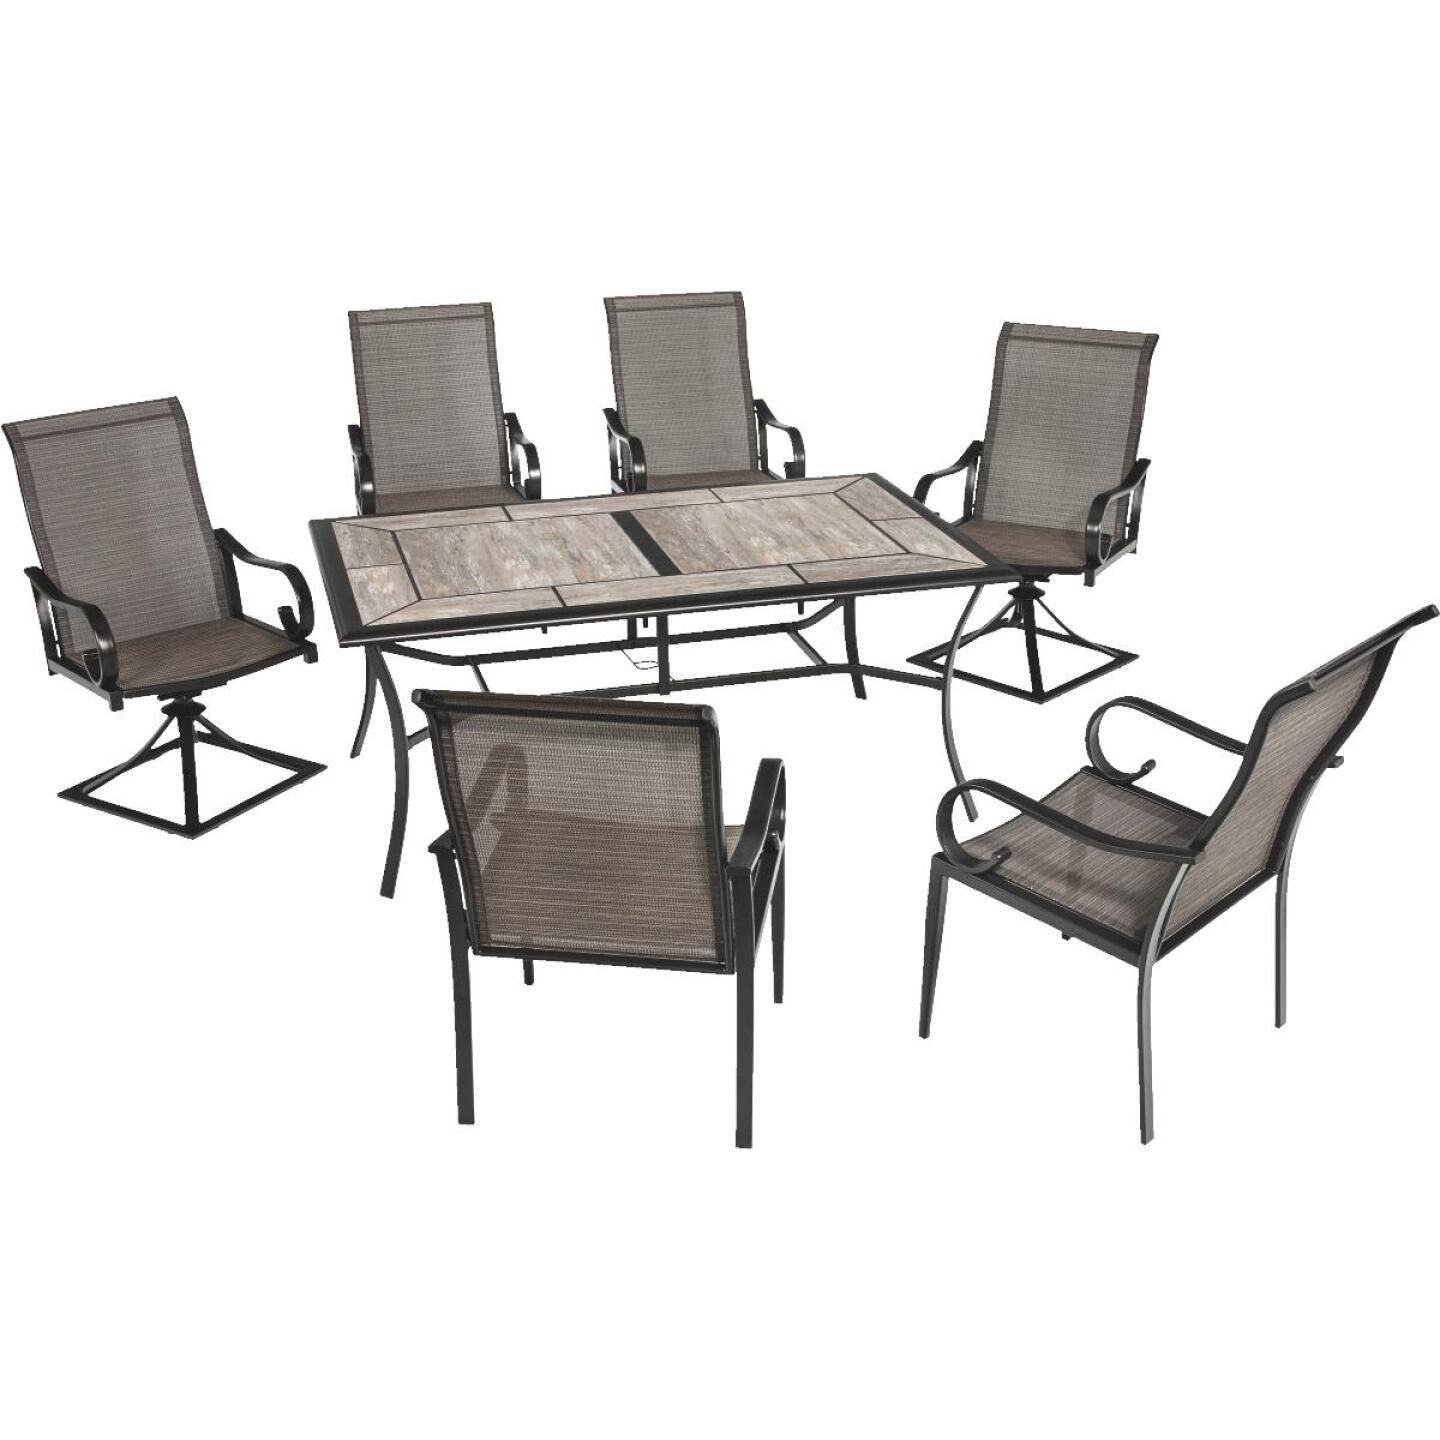 Outdoor Expressions Berkshire 7-Piece Dining Set Image 26